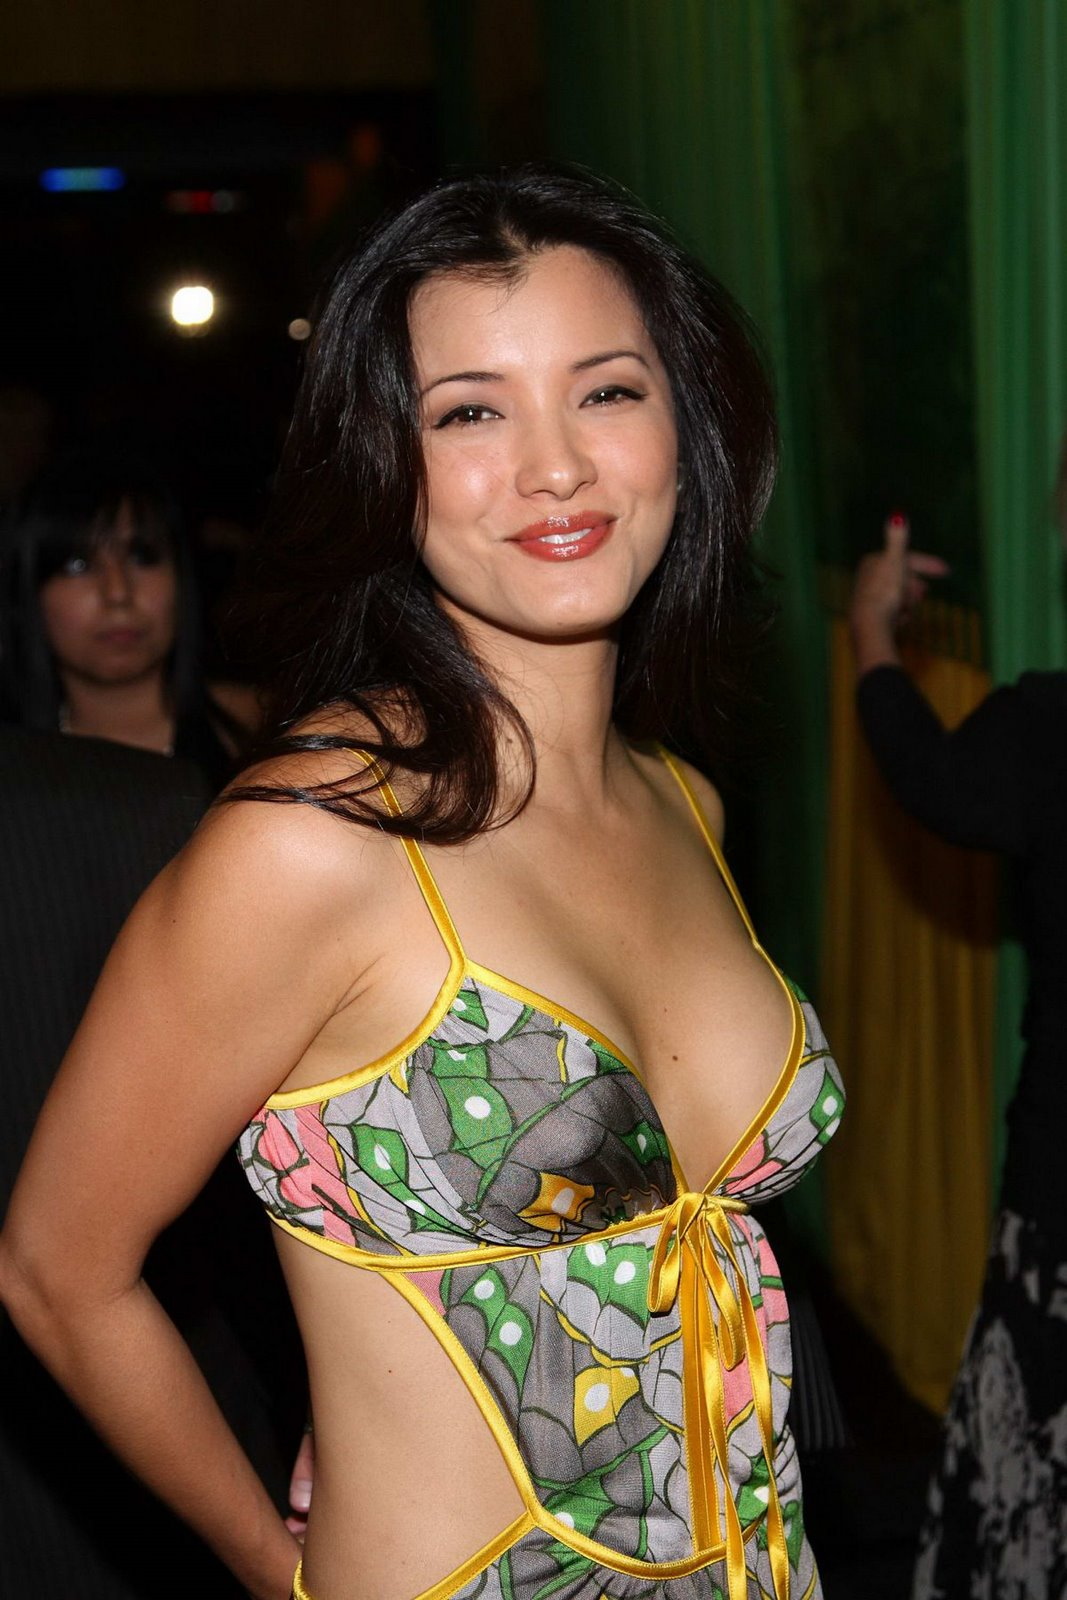 Kelly Ann Hu Nude http://artushphotography.com/chipping-videos-of-kelly-hu-nude/